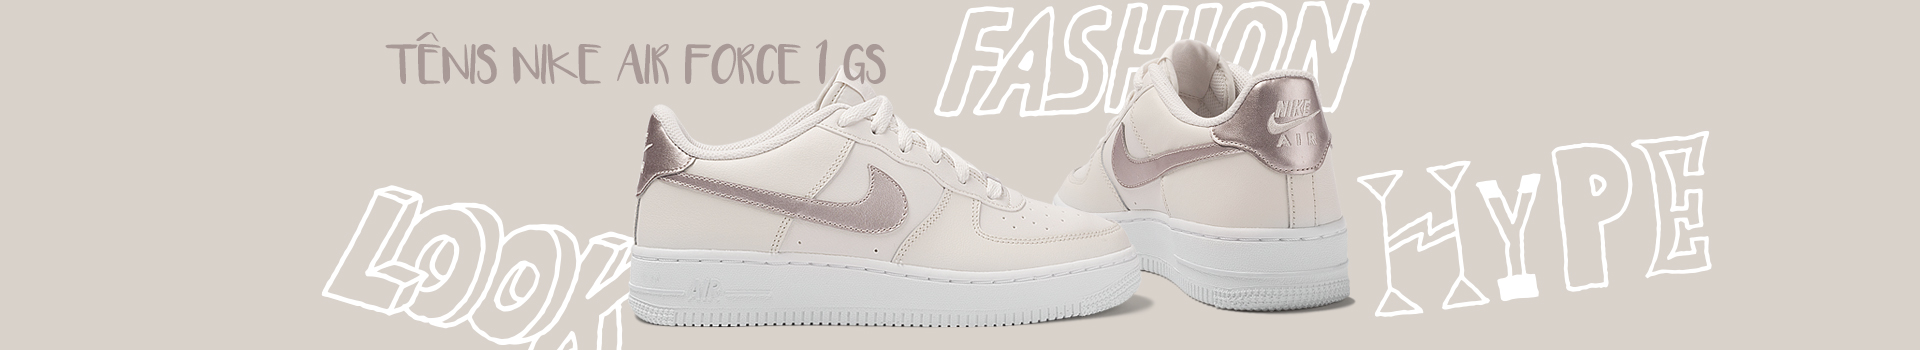 tvdesk_p1-19_10_18-Nike_Air_Force_1